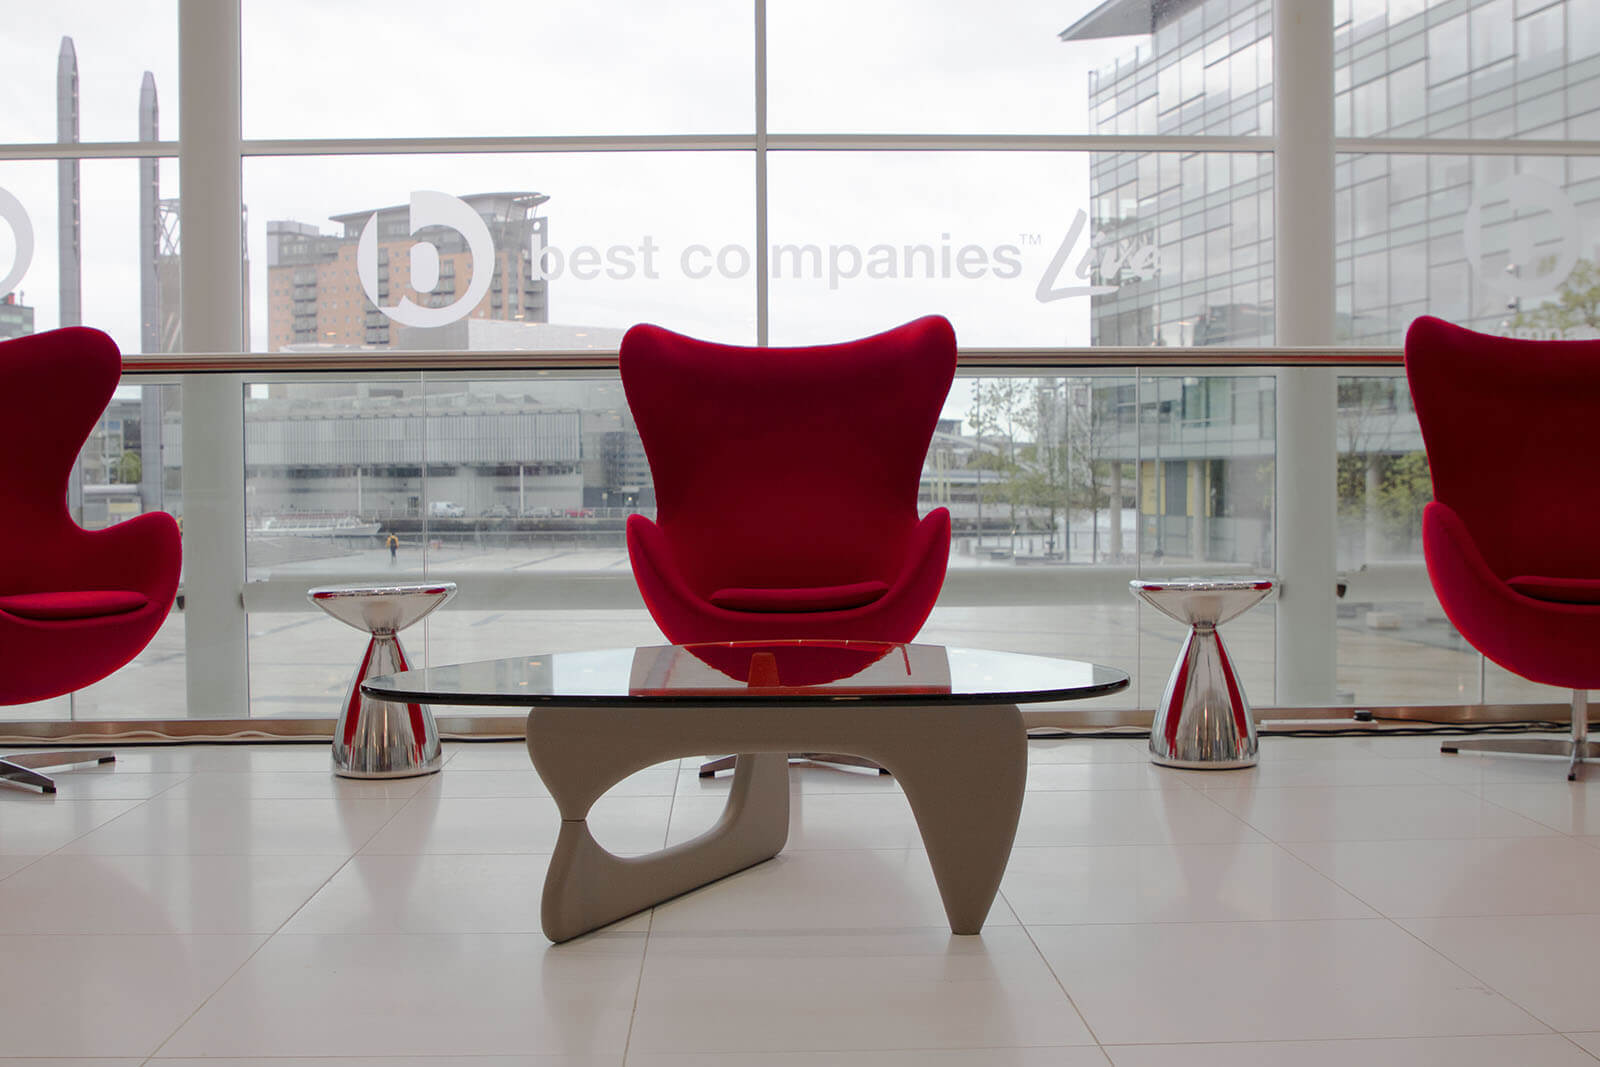 Three red chairs on the set of Best Companies Live at Media City UK